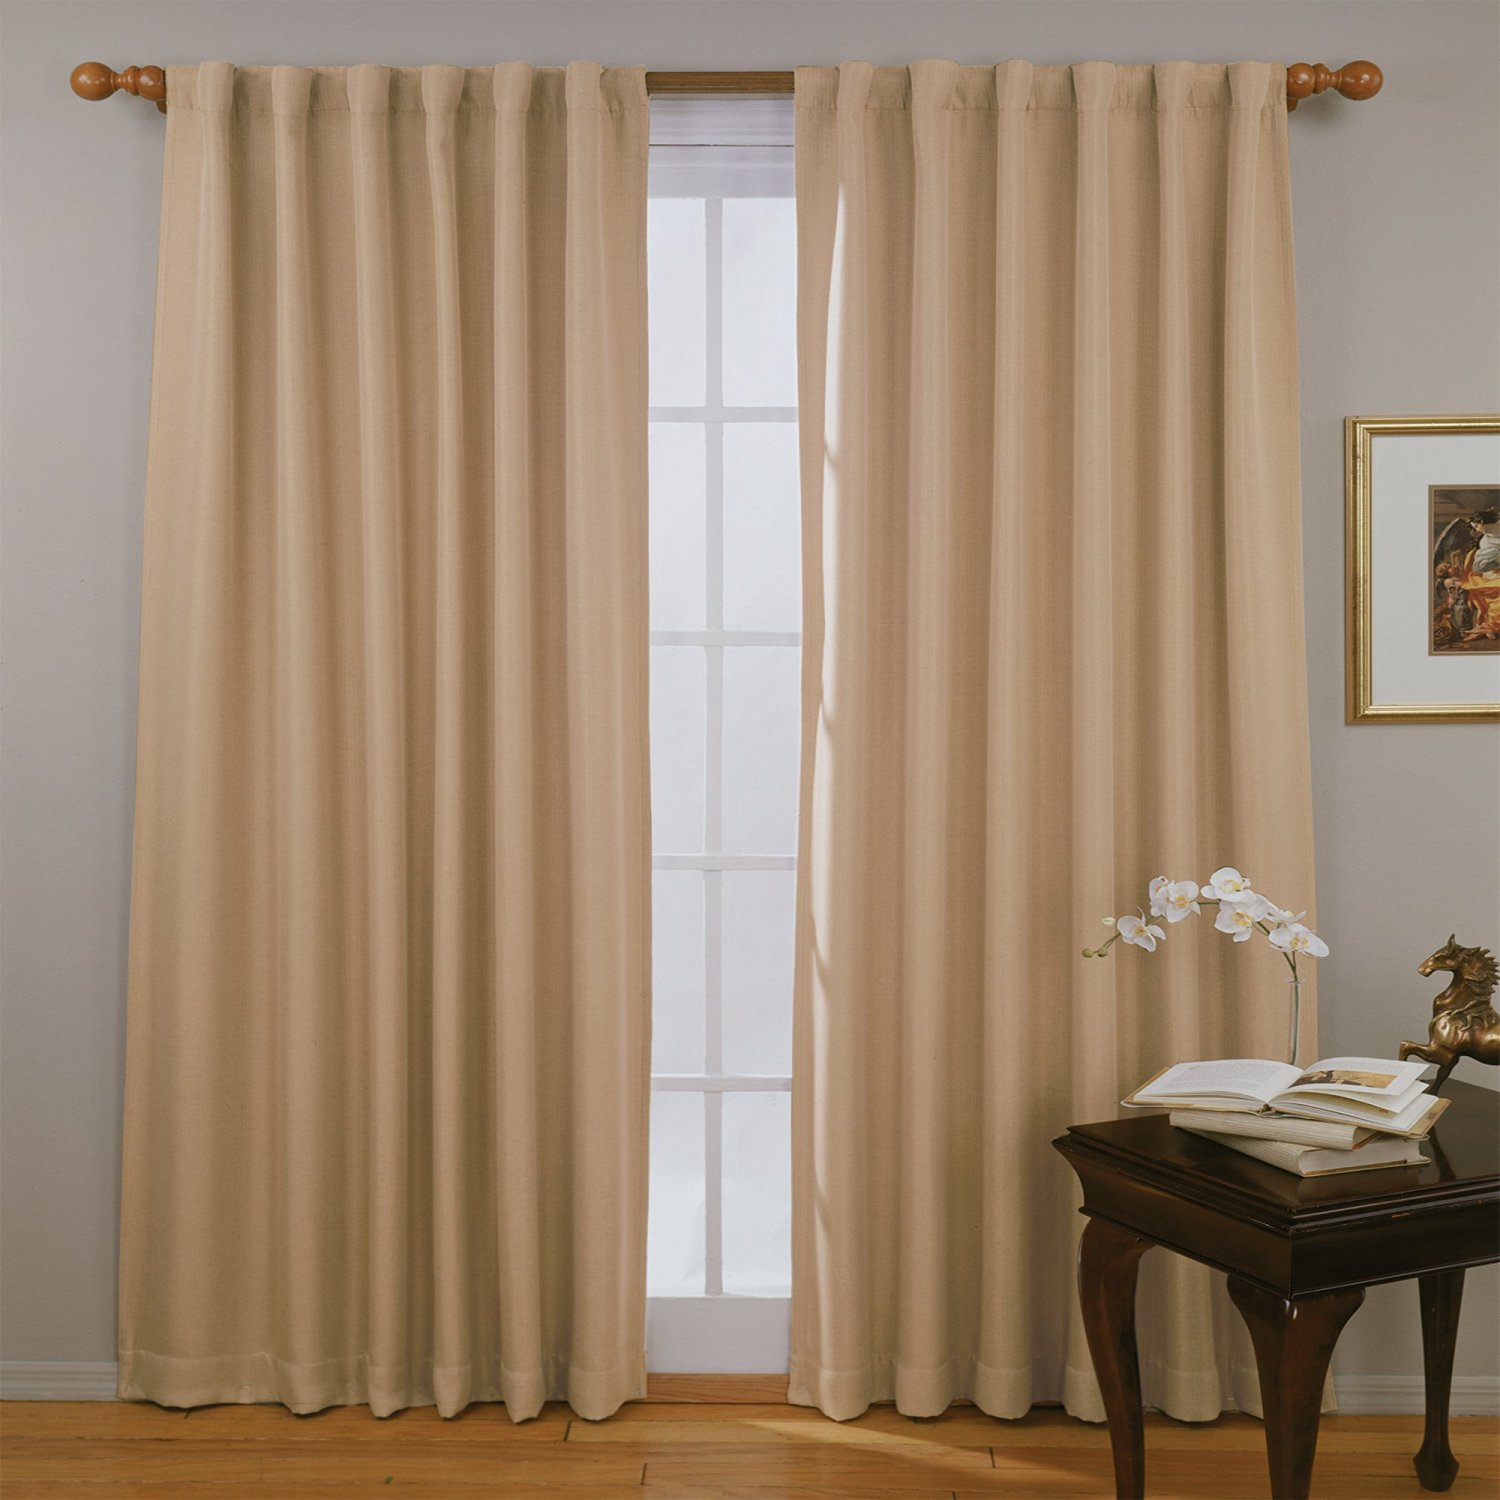 Eclipse Fresno Thermaweave Blackout Window Curtains - Single Pocket Top Panel